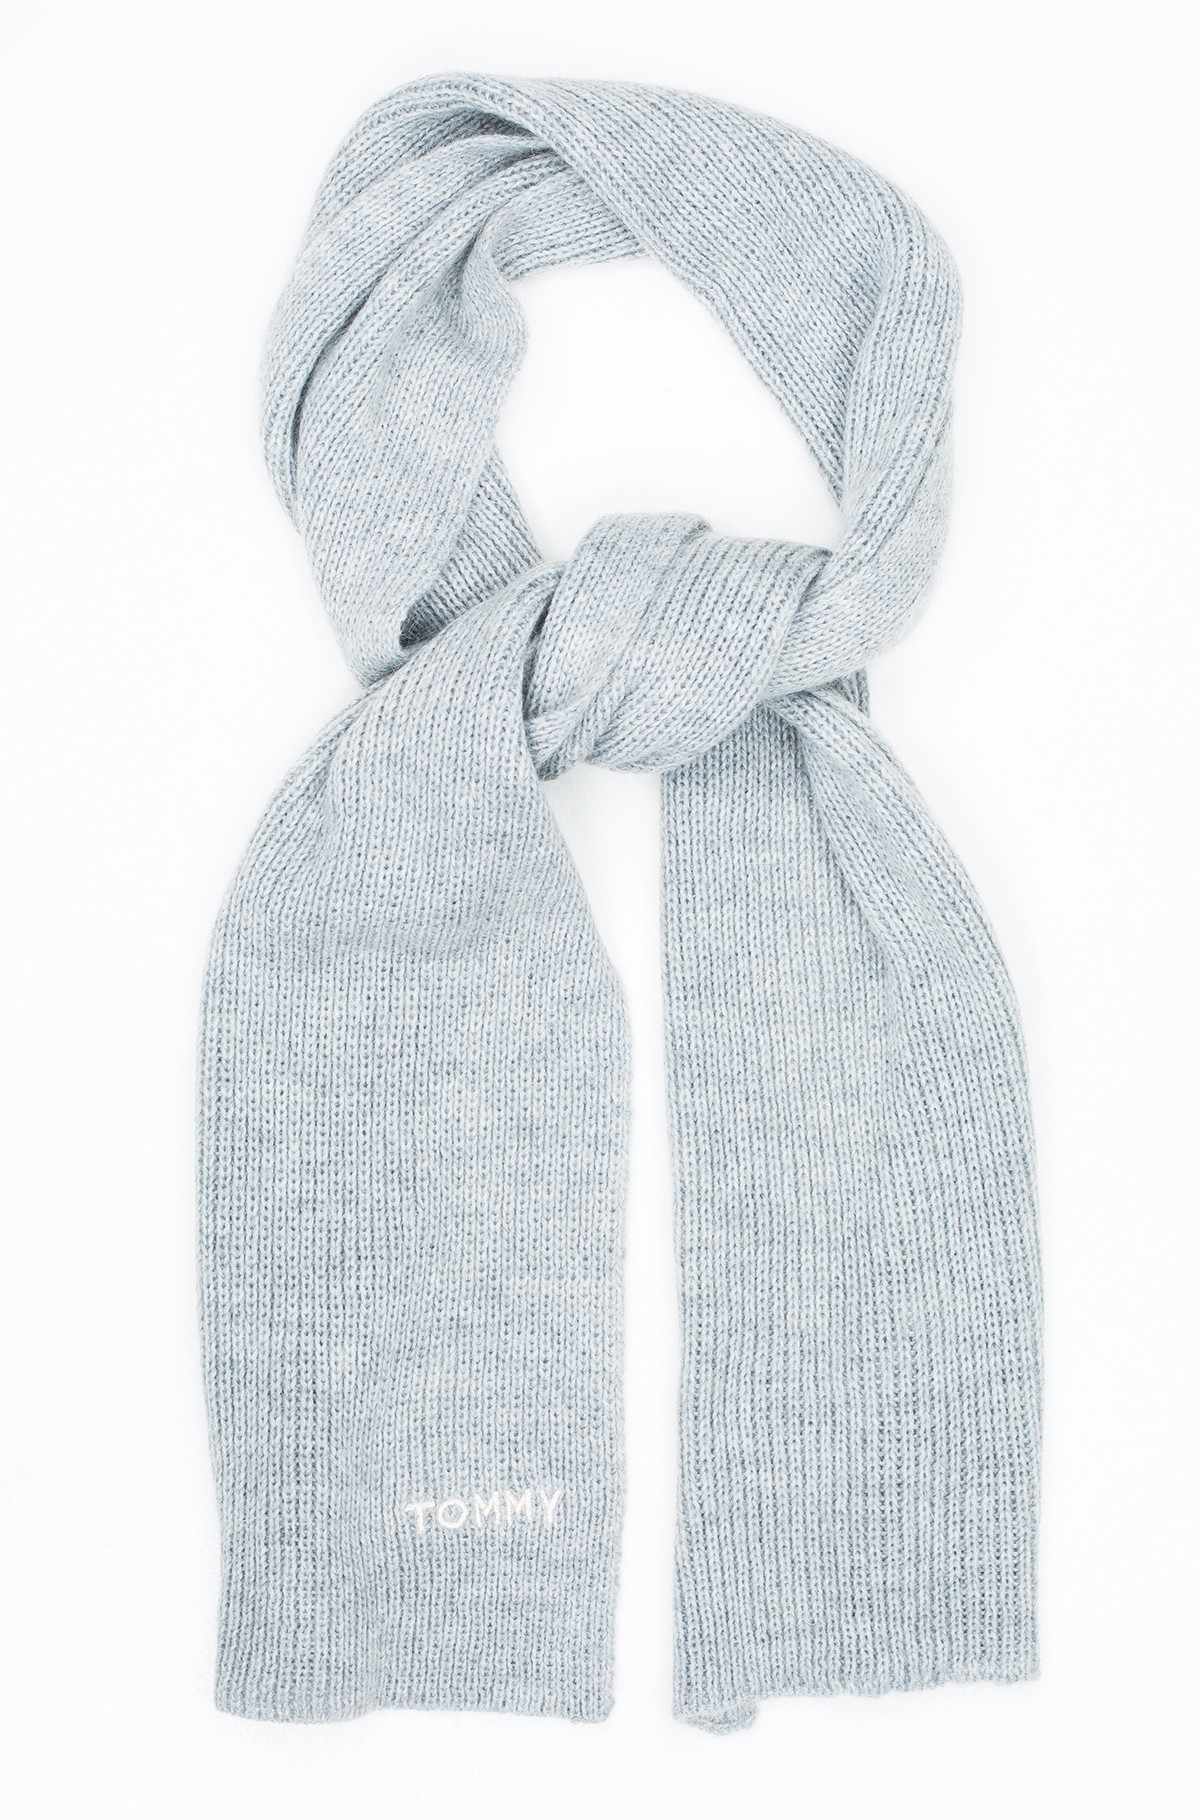 Sall EFFORTLESS KNIT SCARF-full-1